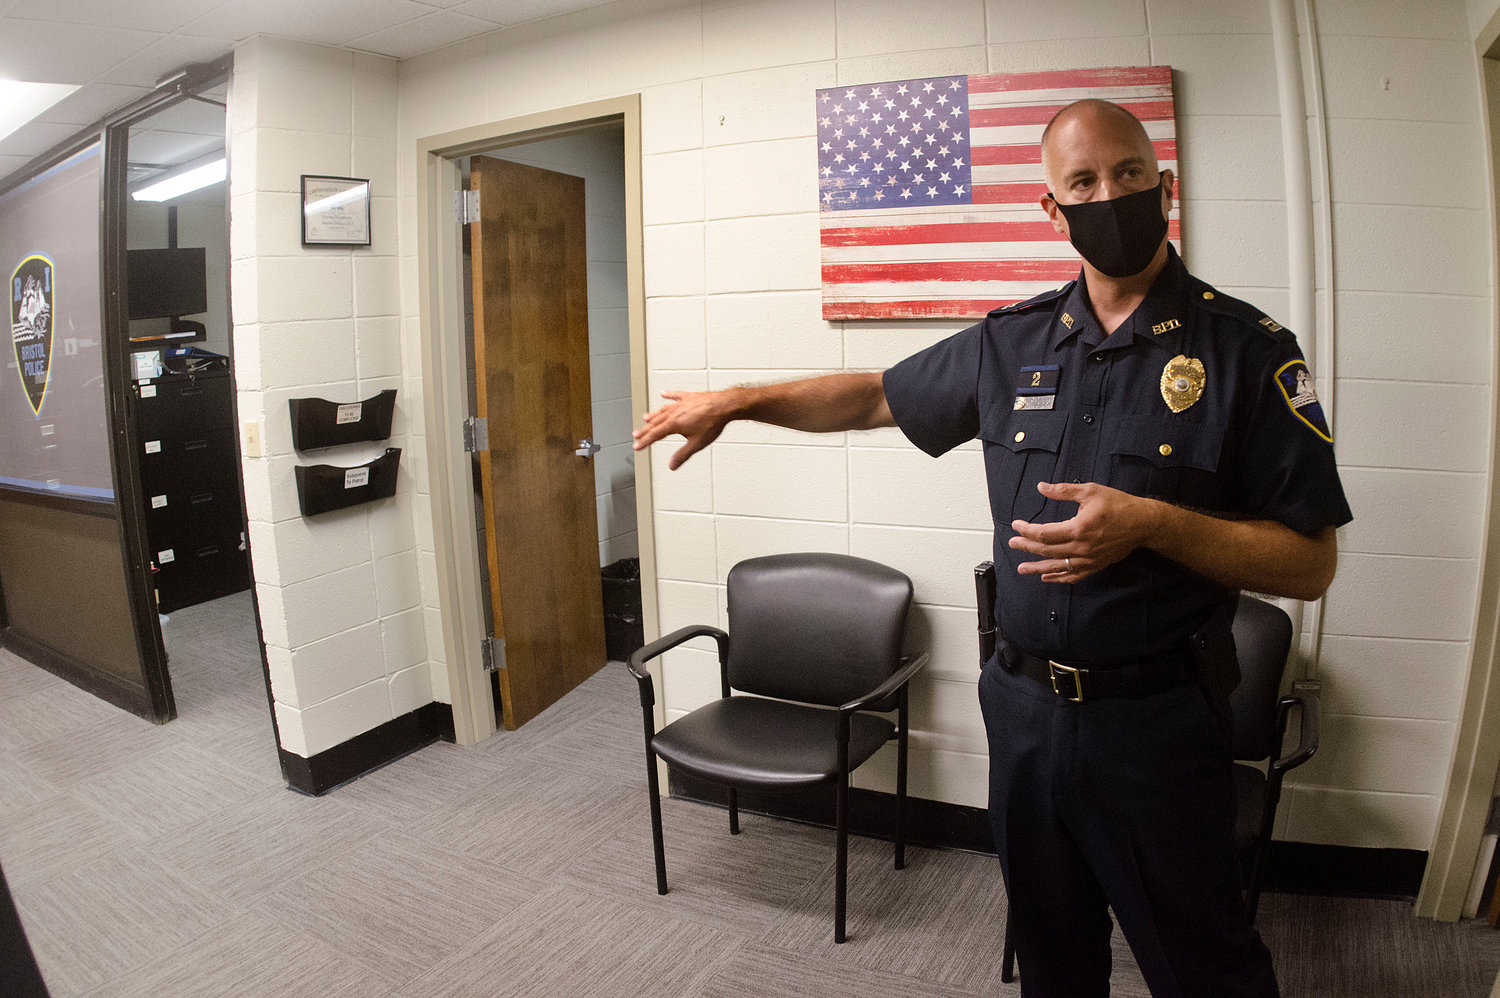 Capt. Brian Burke shows some of the building improvements, including new carpeting, all done in-house by officers.